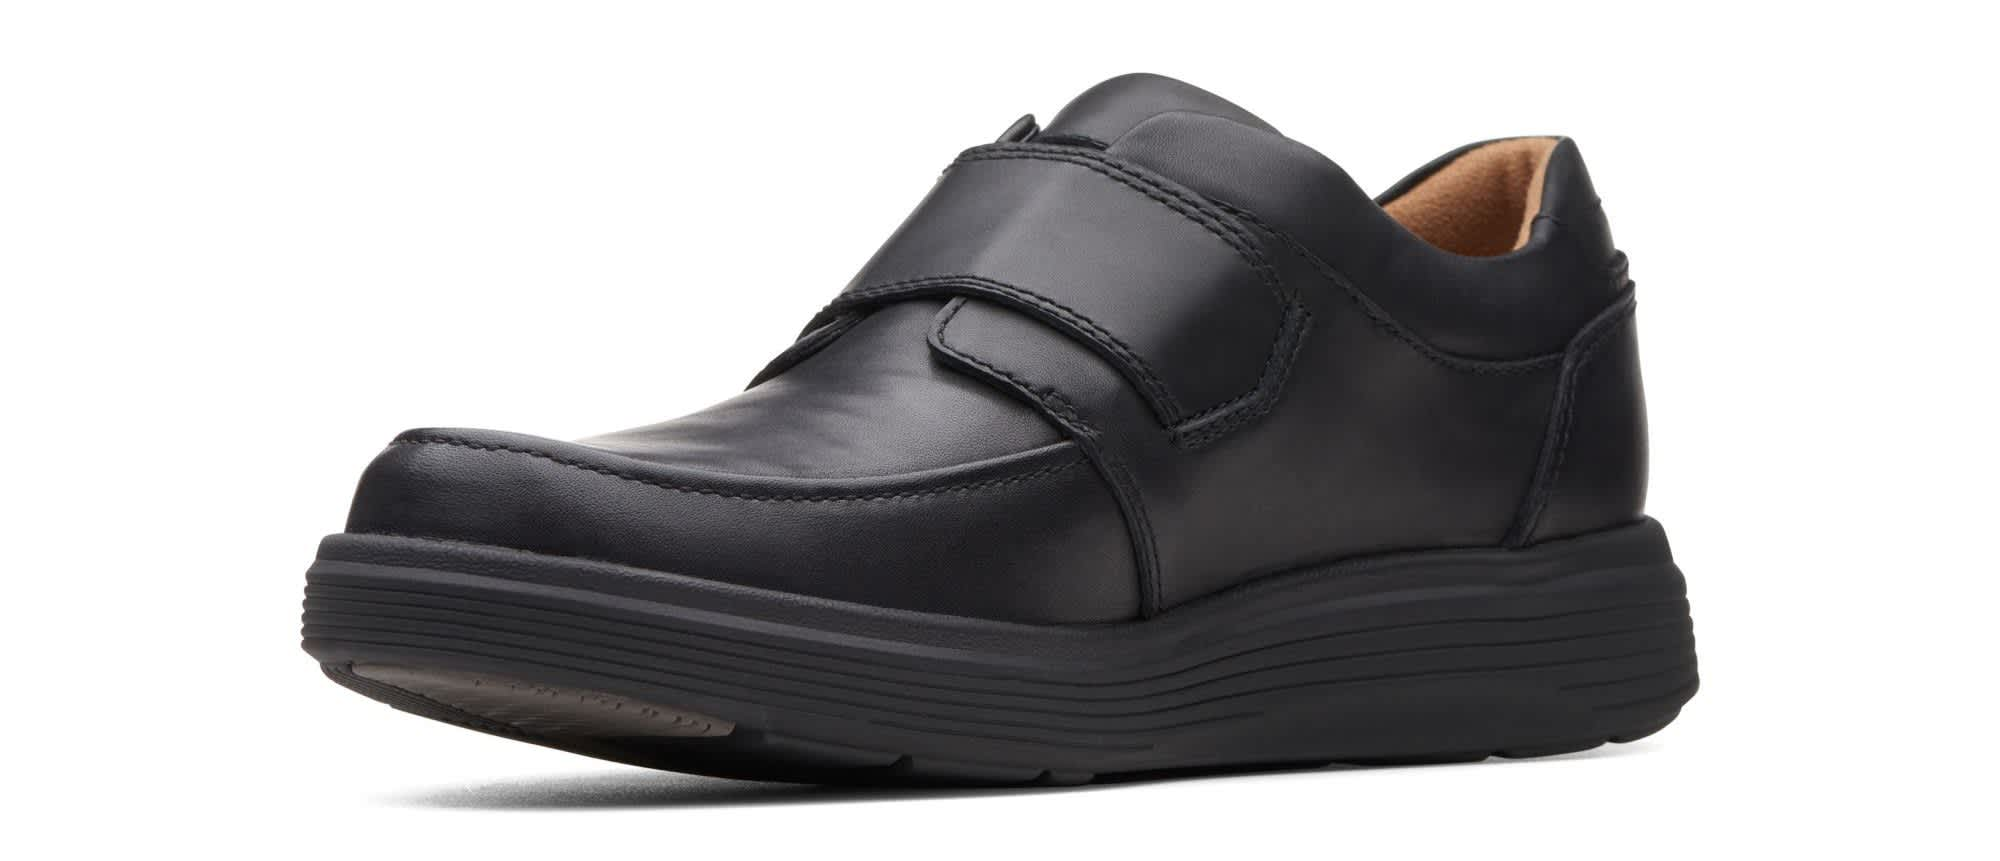 Clarks Men's Un Abode Strap Leather Shoes